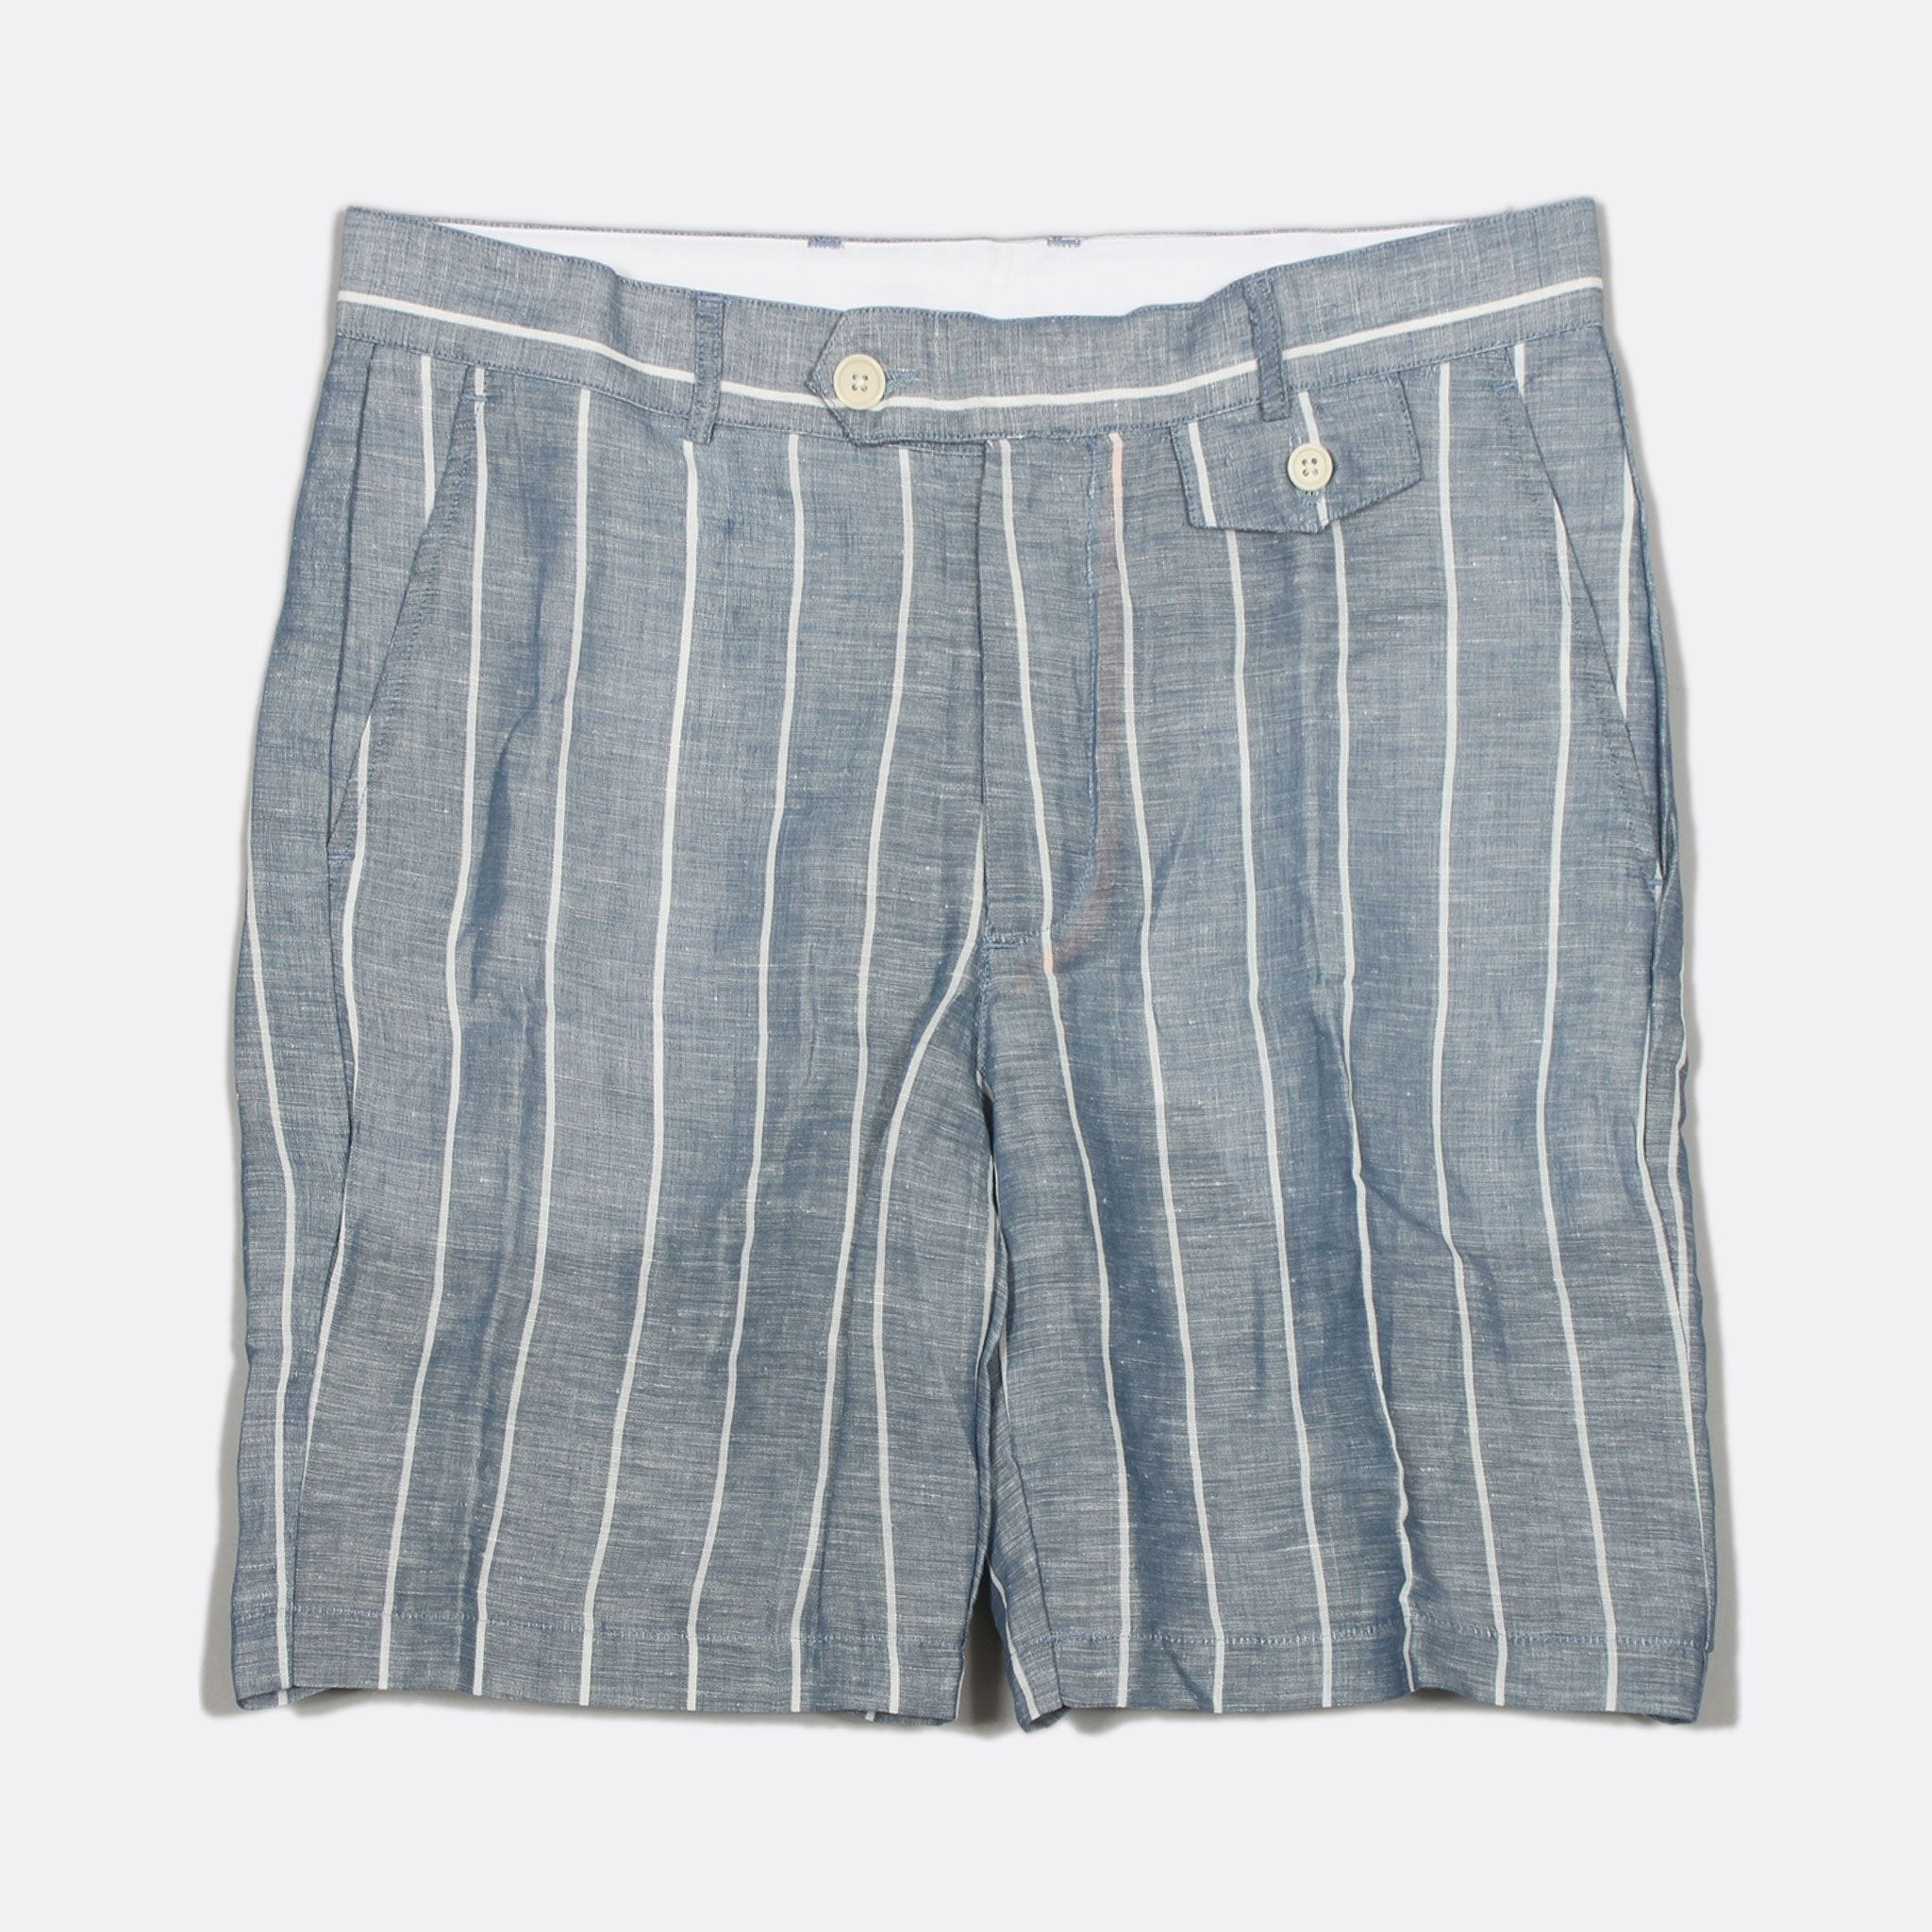 Far Afield Tricker Shorts a Blue Linen Fabric Classic Tailored Stripe Casual